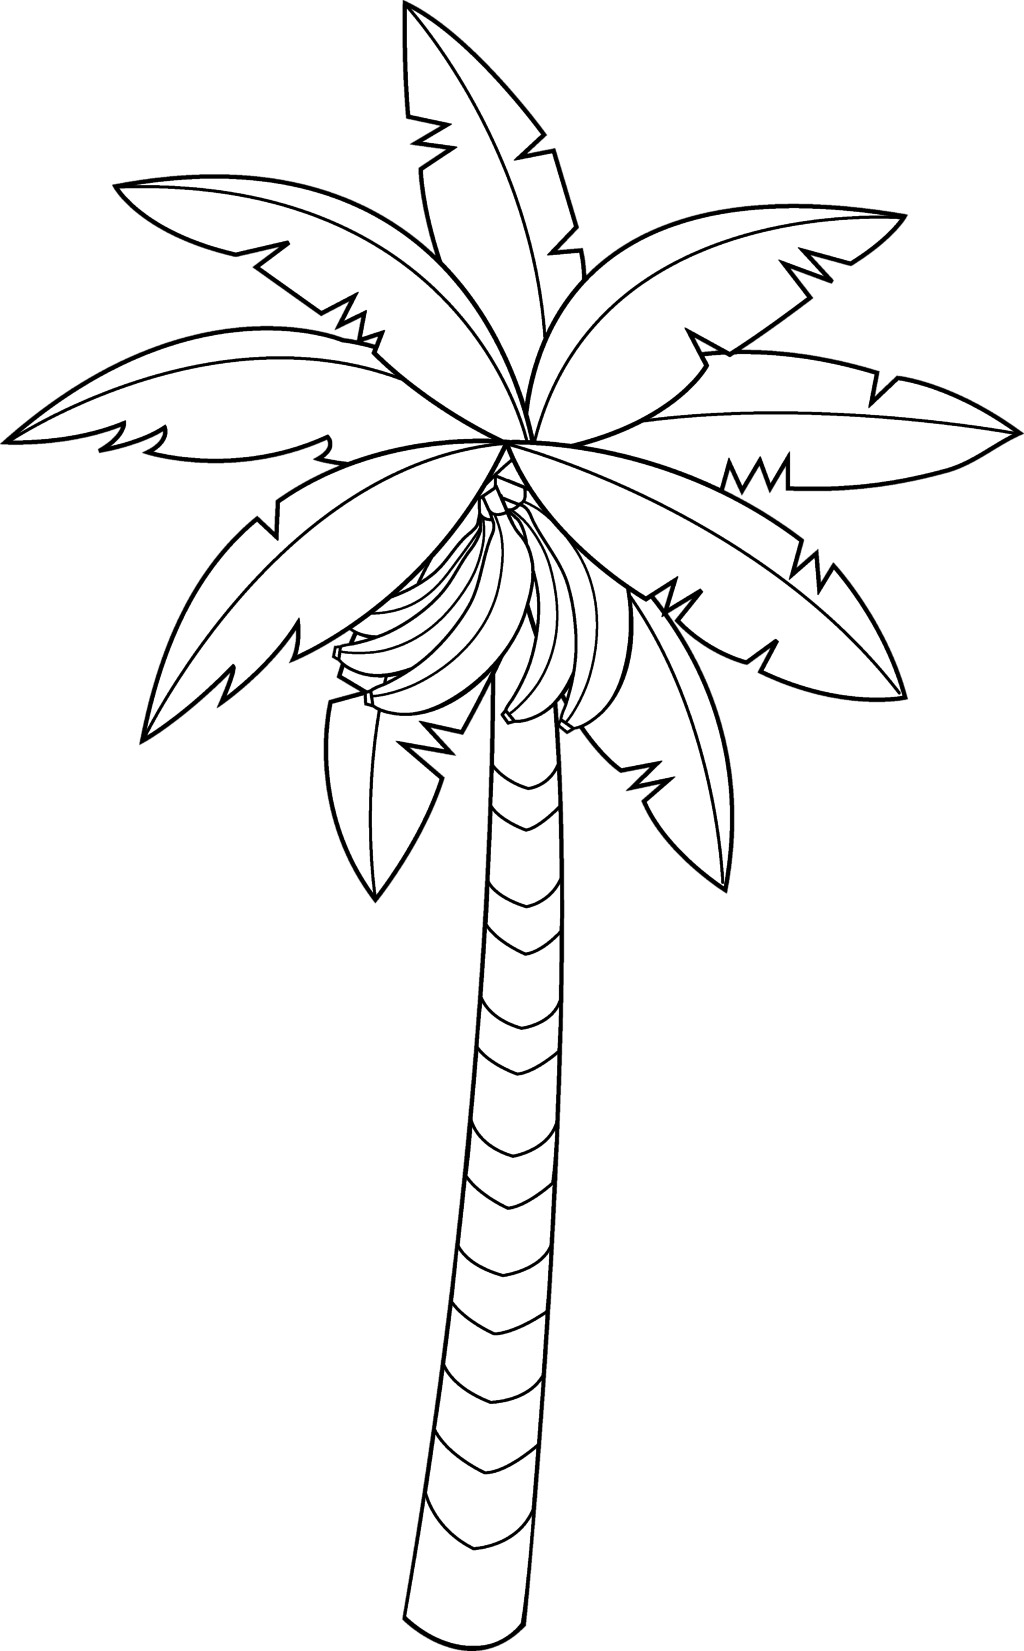 Banana Coloring Pages Best Coloring